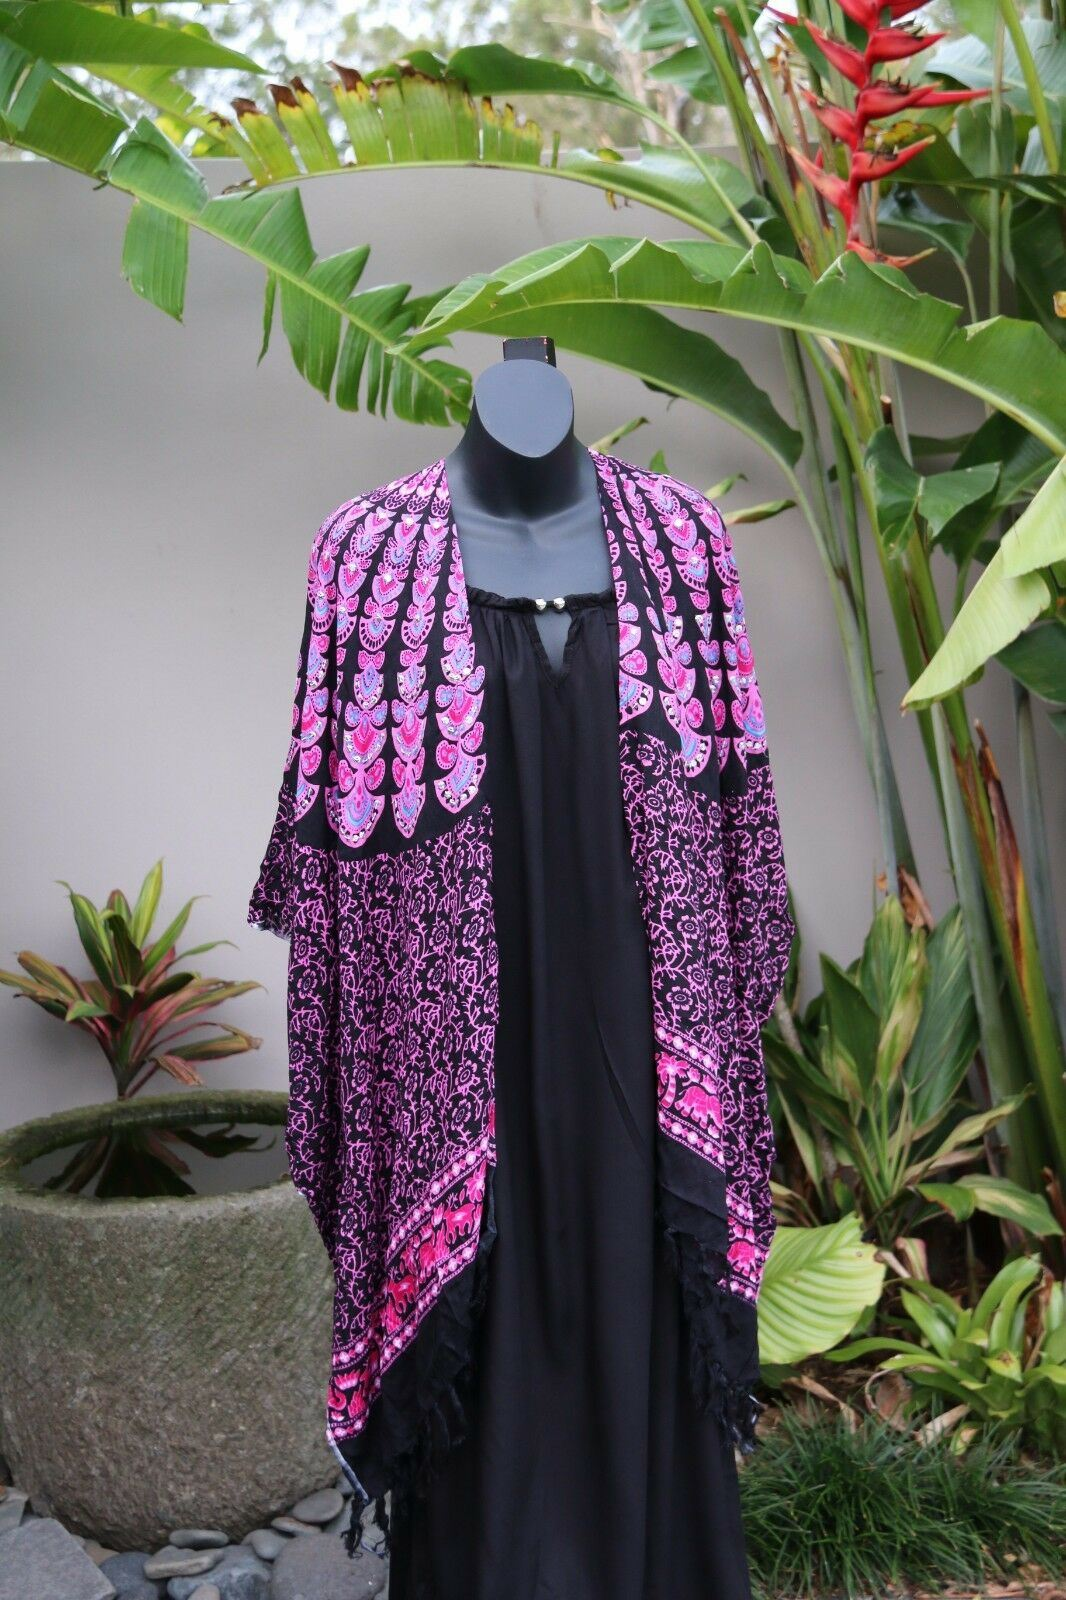 Balinese Mandala Print Light Weight Jacket with Sequins MANY COLOURS - One Size